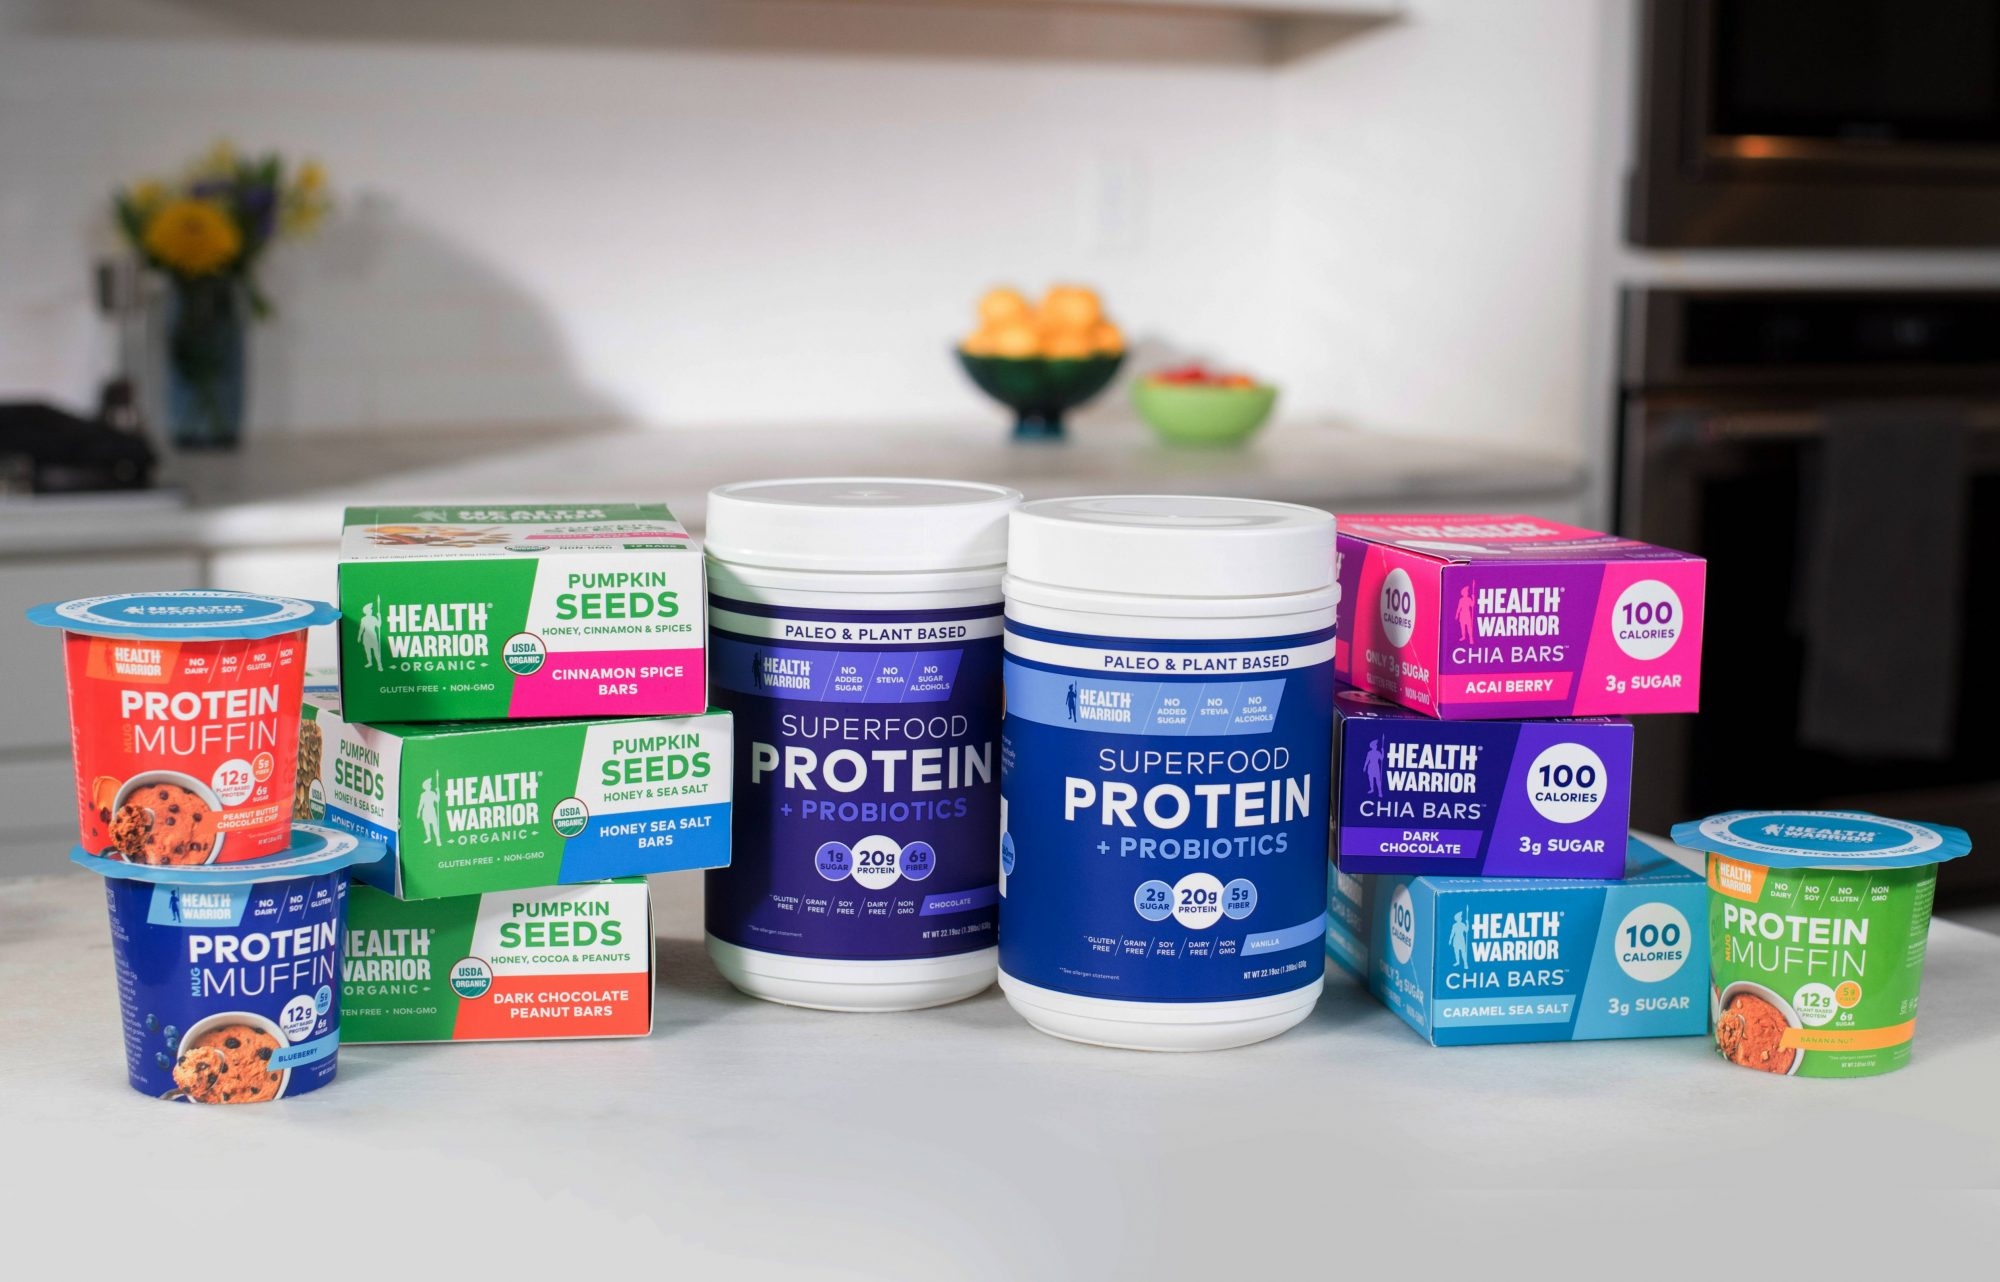 PepsiCo Acquires Snack Bar Brand Health Warrior, Betting on Plant-Based Superfoods